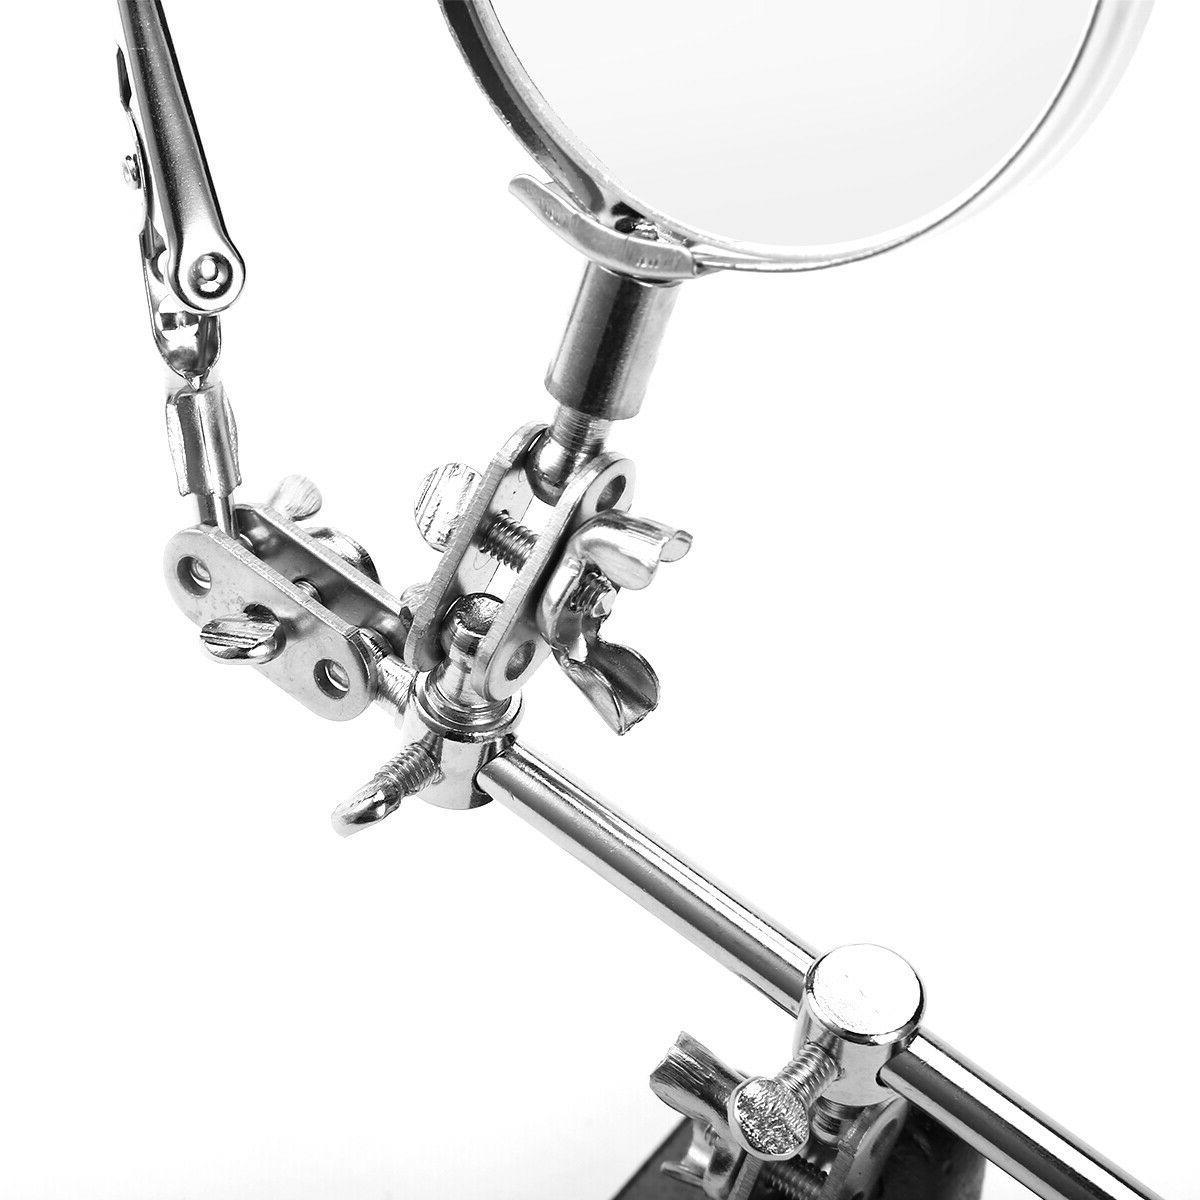 Helping Hand Magnifier Magnifying Glass Holder Soldering Stand